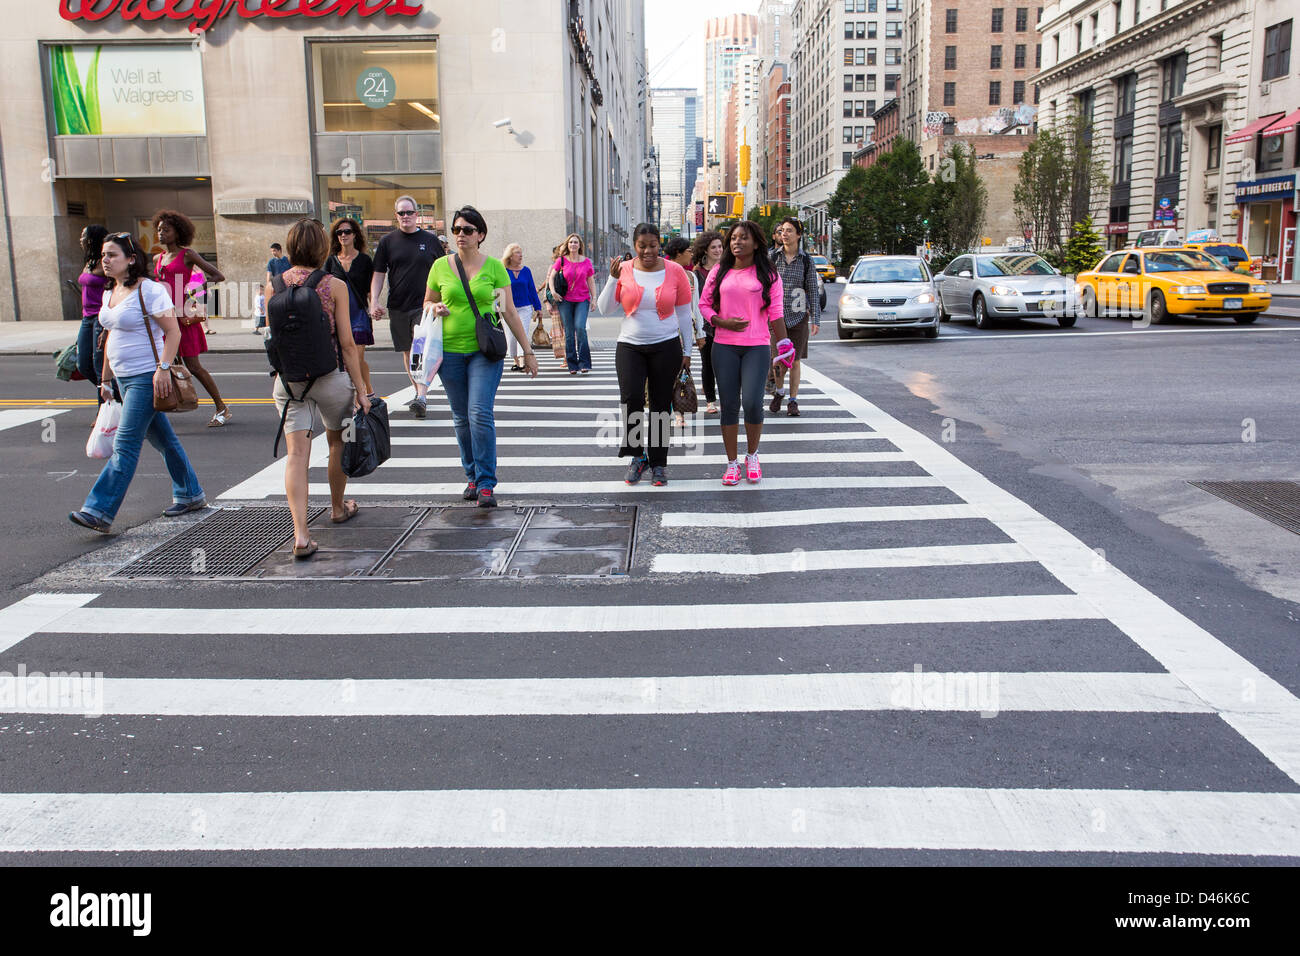 People crossing a street using a crosswalk in New York City - Stock Image